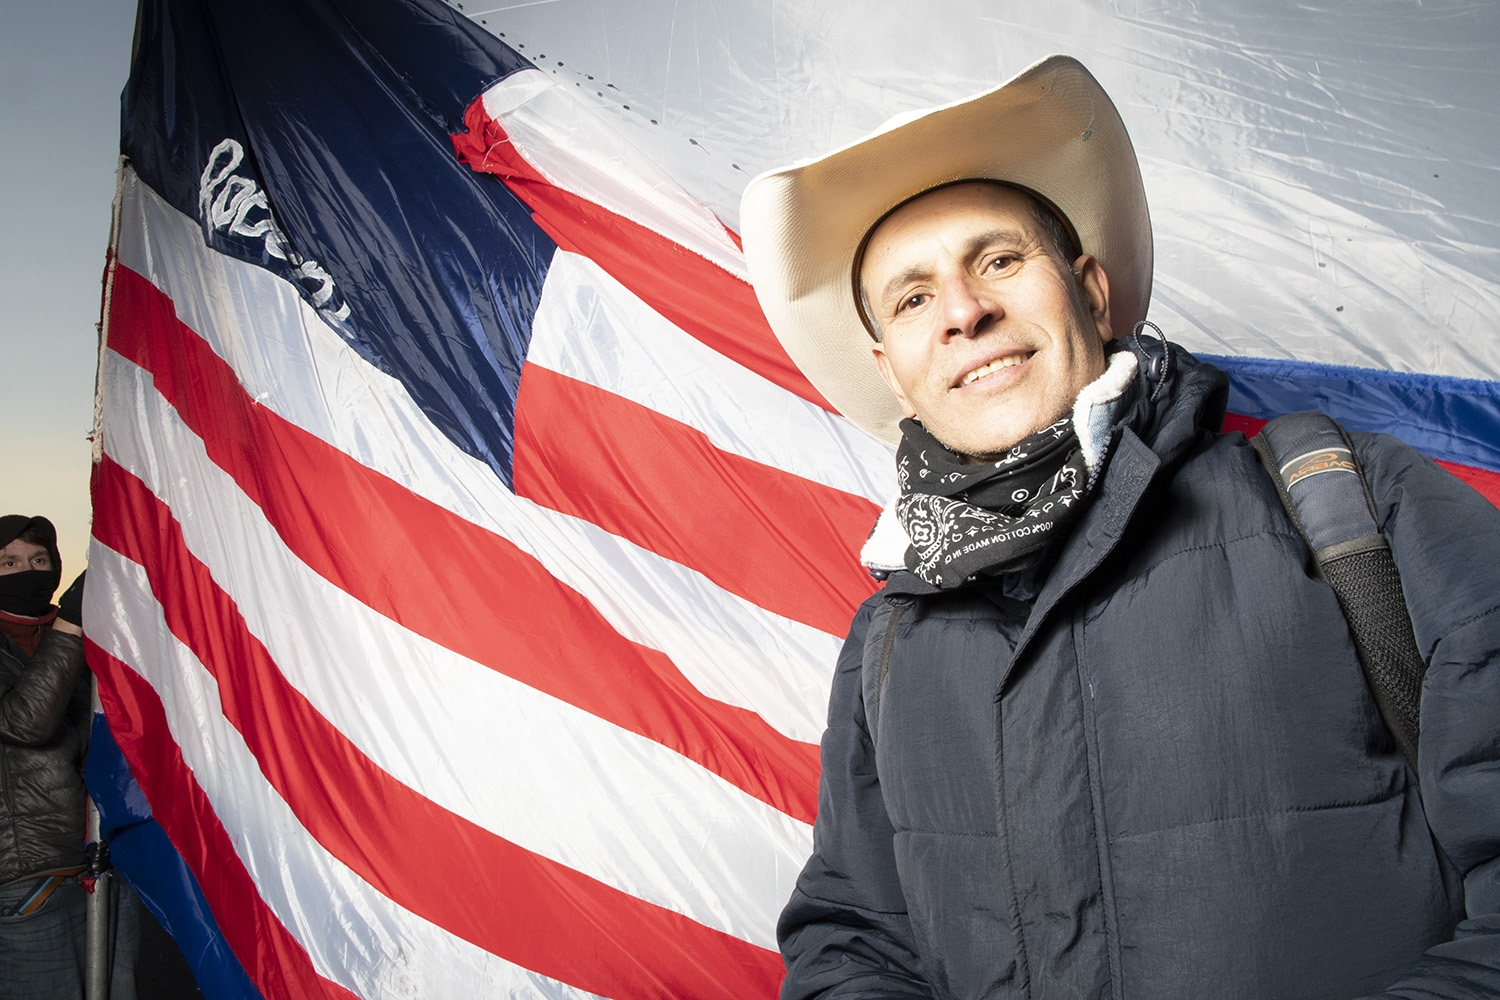 A slightly smiling Mexican man stands in front of a giant U.S. flag, which is missing its stars. The man wears a tan cowboy hat, a black bandana around his neck, and a navy winter jacket.